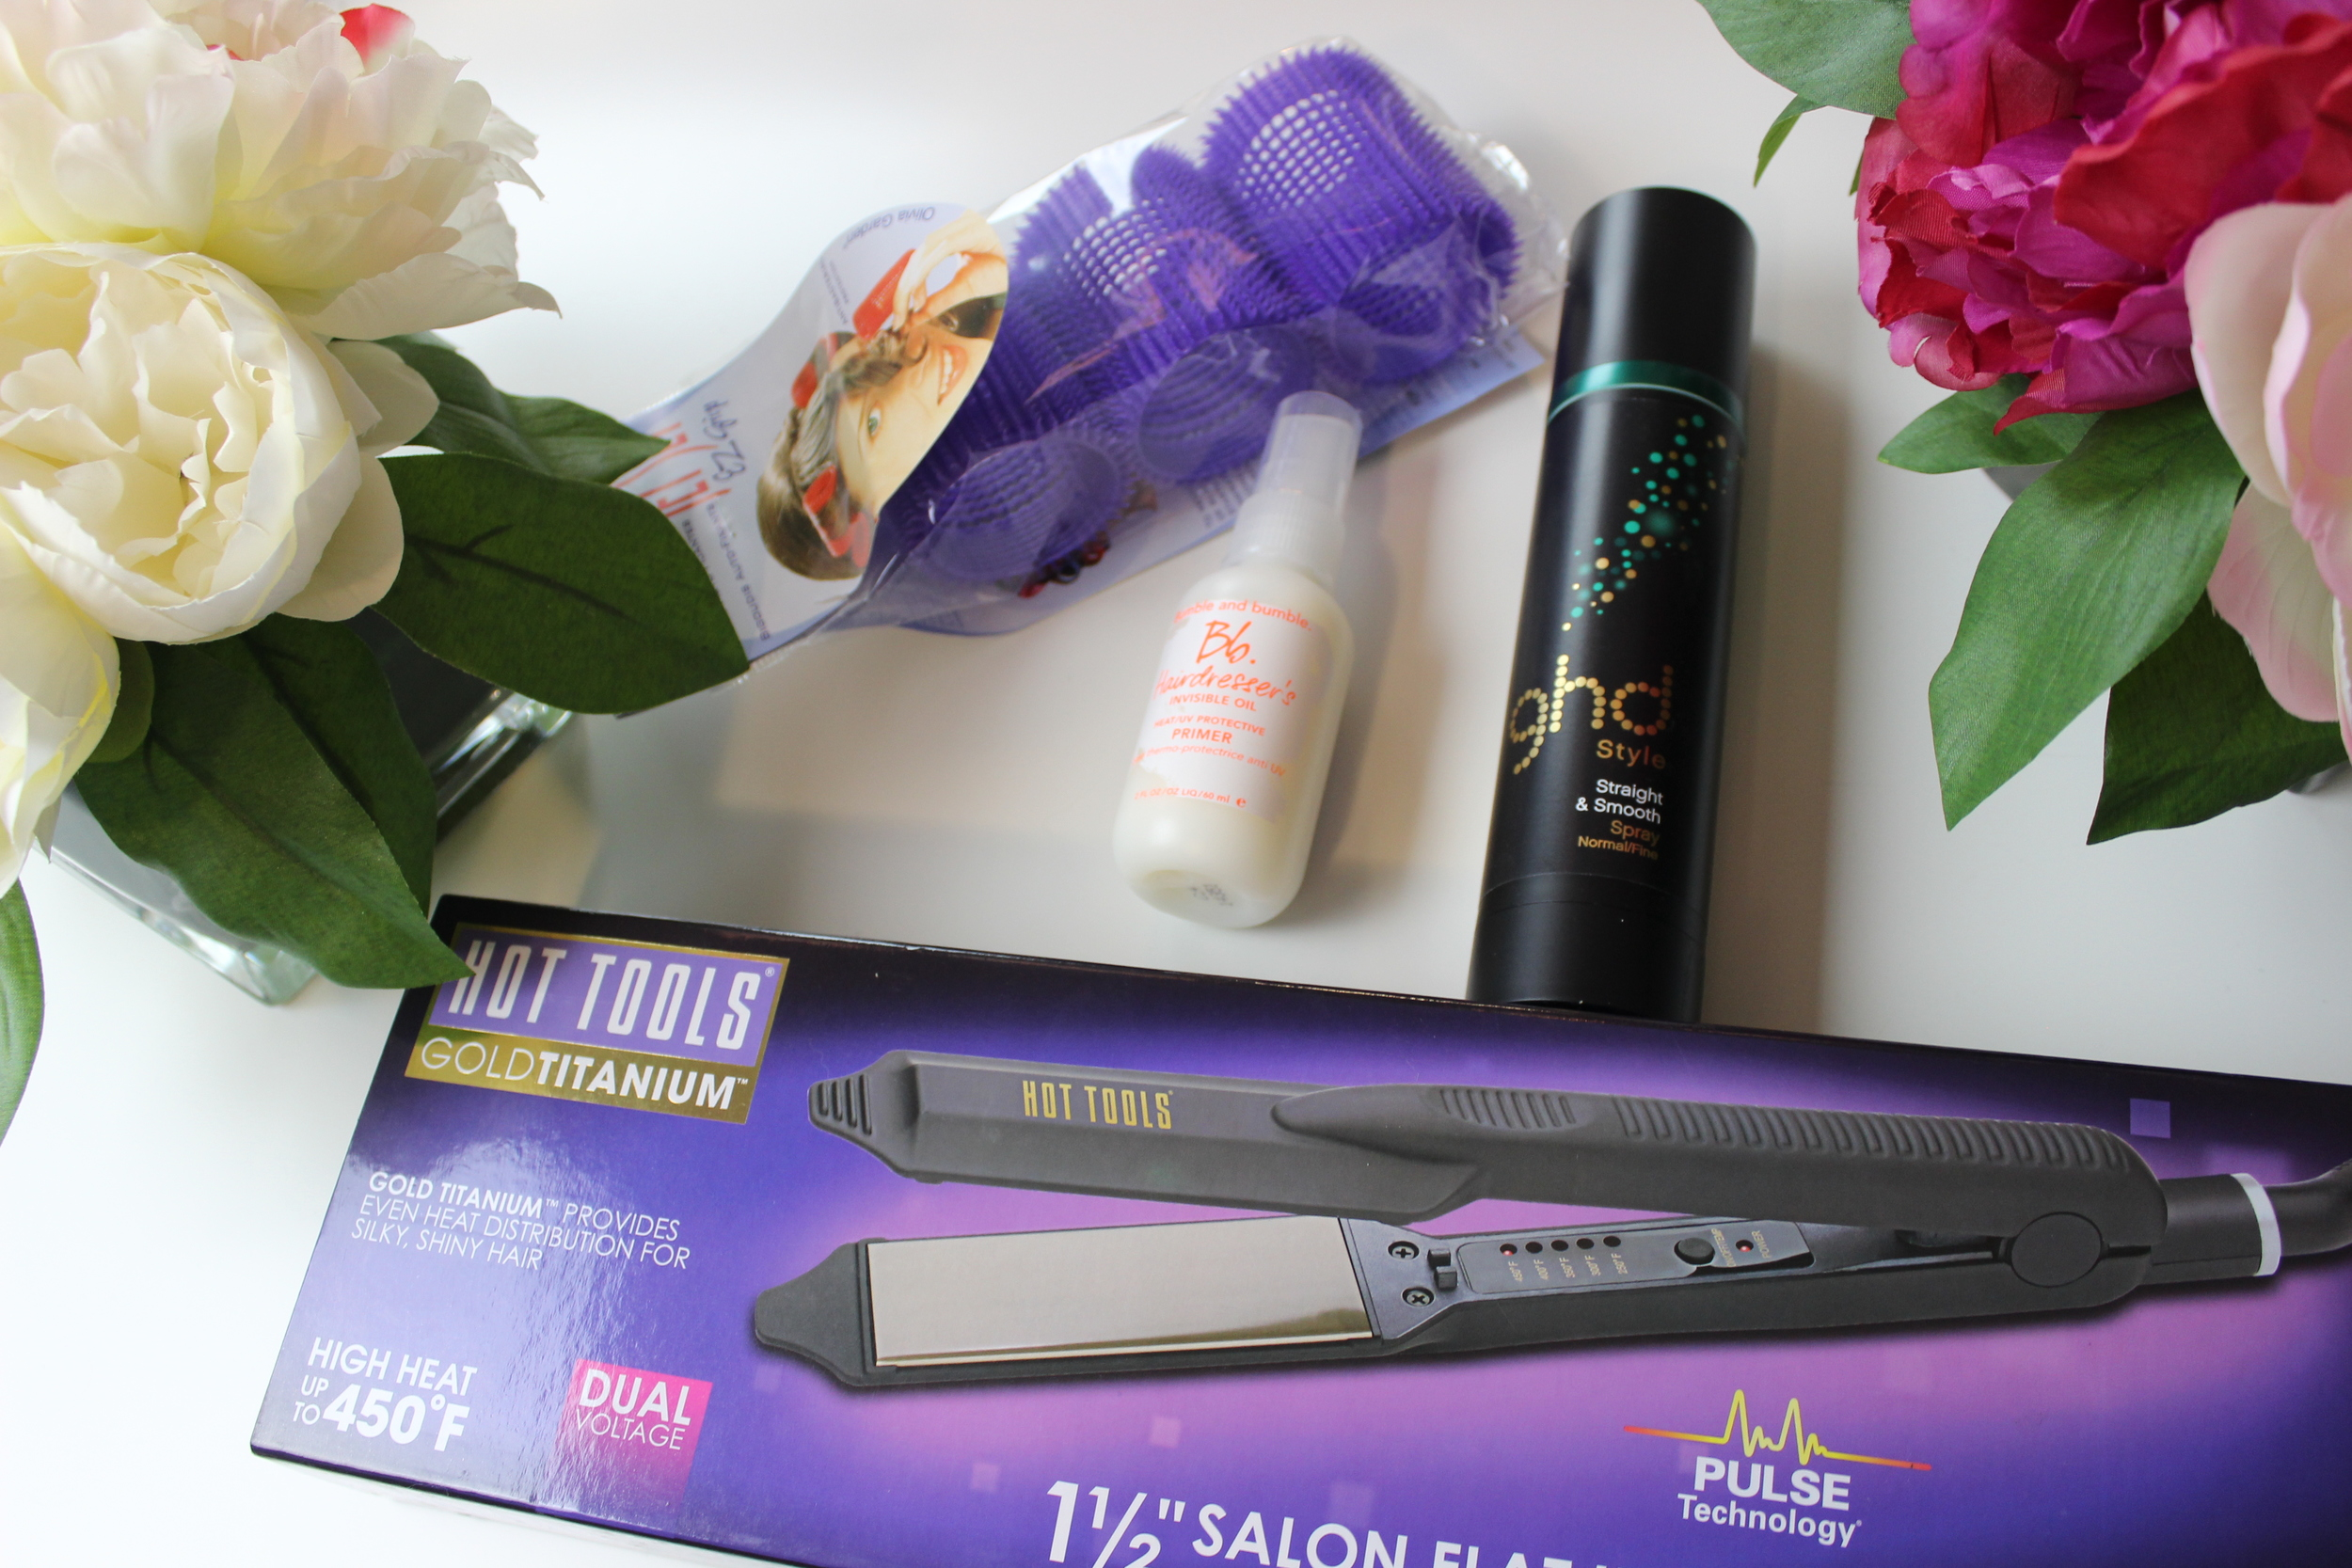 Win these amazing products, and enjoy beautiful hair all season!